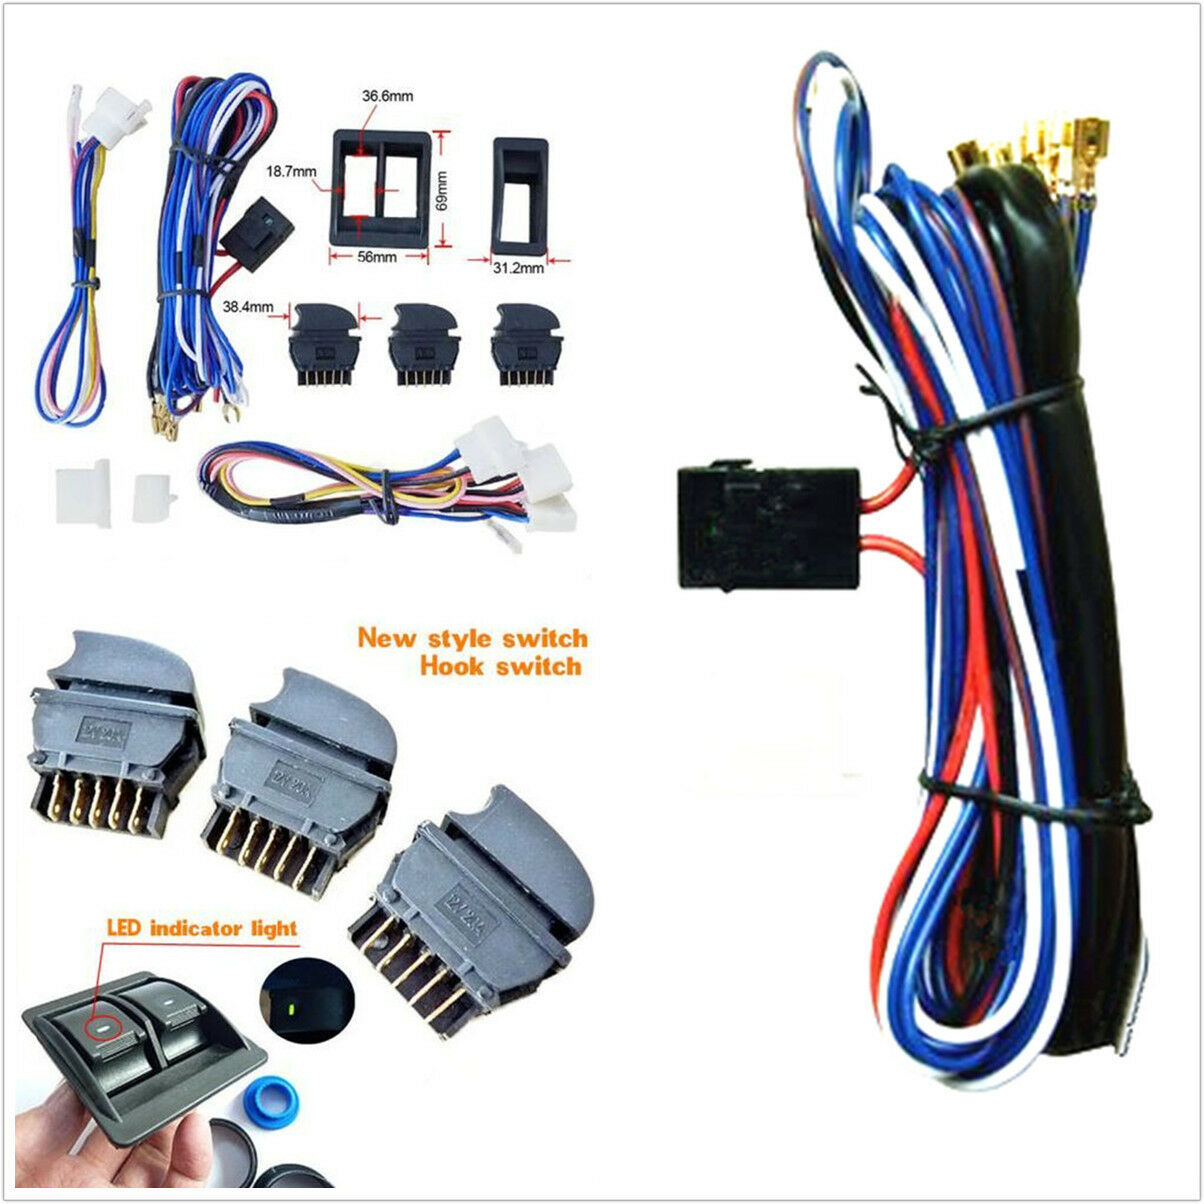 s l1600 diy dc 12v car power electric window switch with wire harness Shoulder Harness at creativeand.co